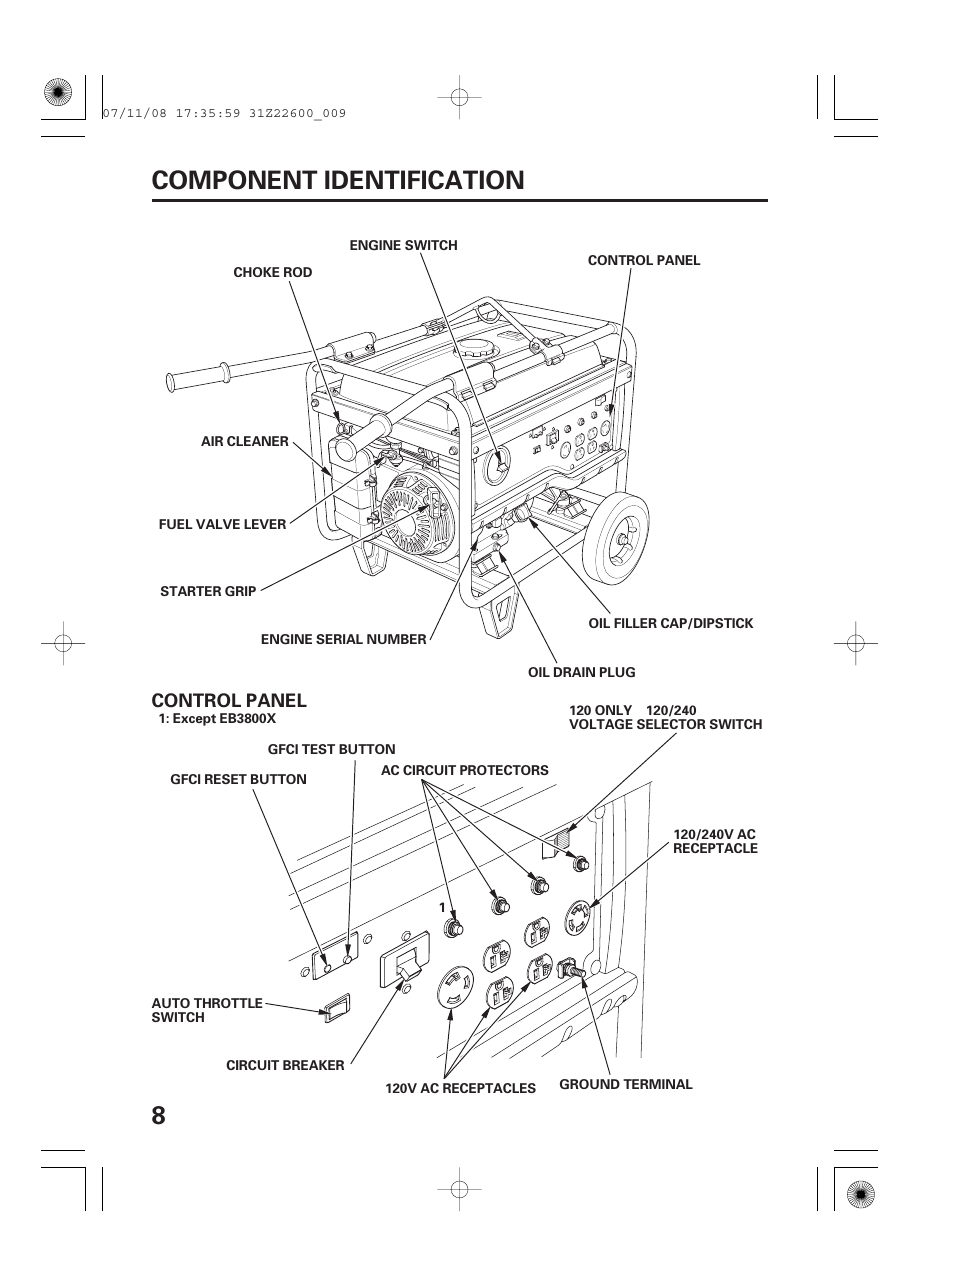 Component identification, 8component identification, Control panel | HONDA  EB5000X User Manual | Page 10 / 71